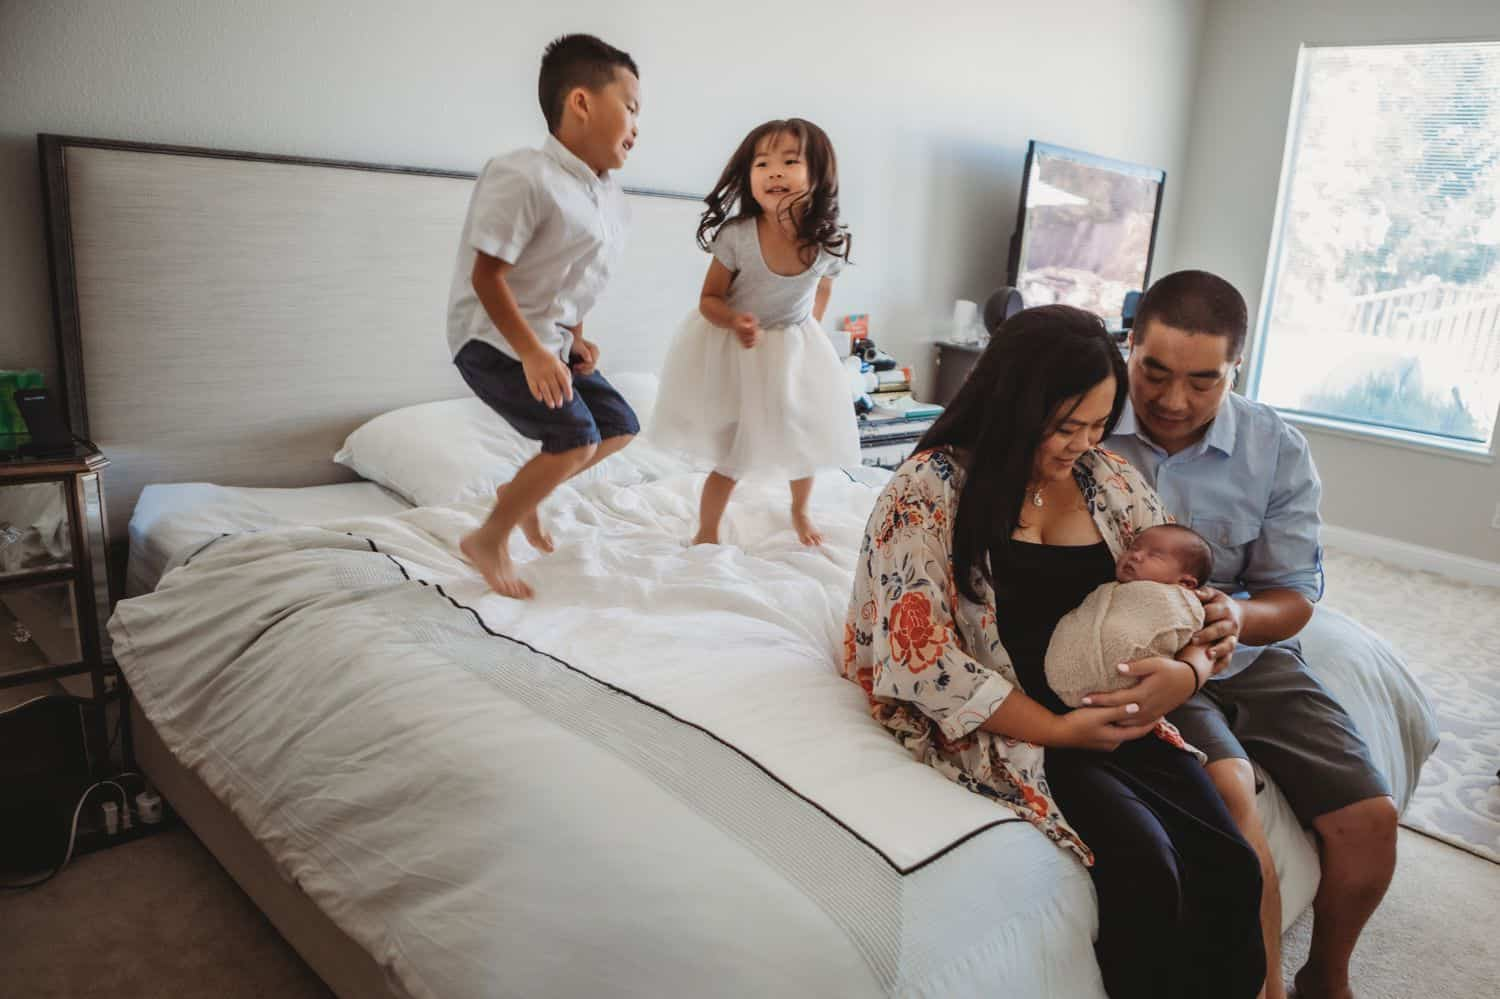 New parents sit on the edge of their bed holding their newborn baby while their young son and daughter jump on the bed behind them.